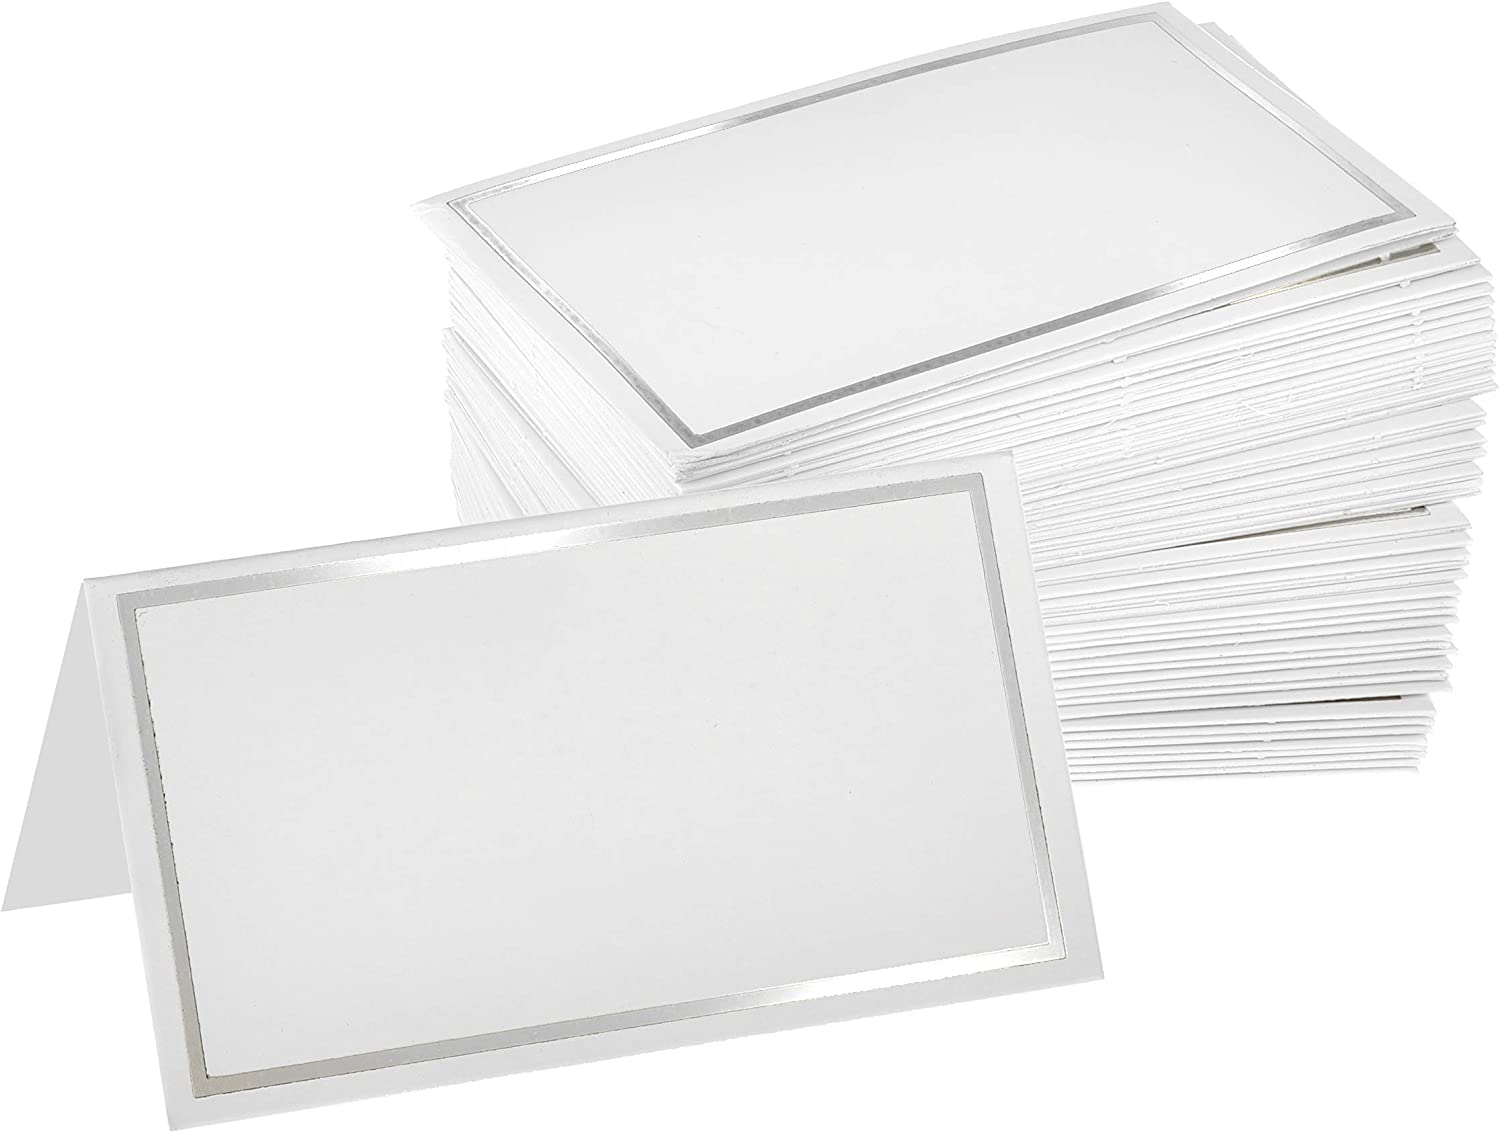 """Alpine Industries Tent Place Cards 2"""" x 3.5"""", Place Cards for Weddings, Events, Special Occasions High-Grade Elegant Design - (White - Silver Border)"""